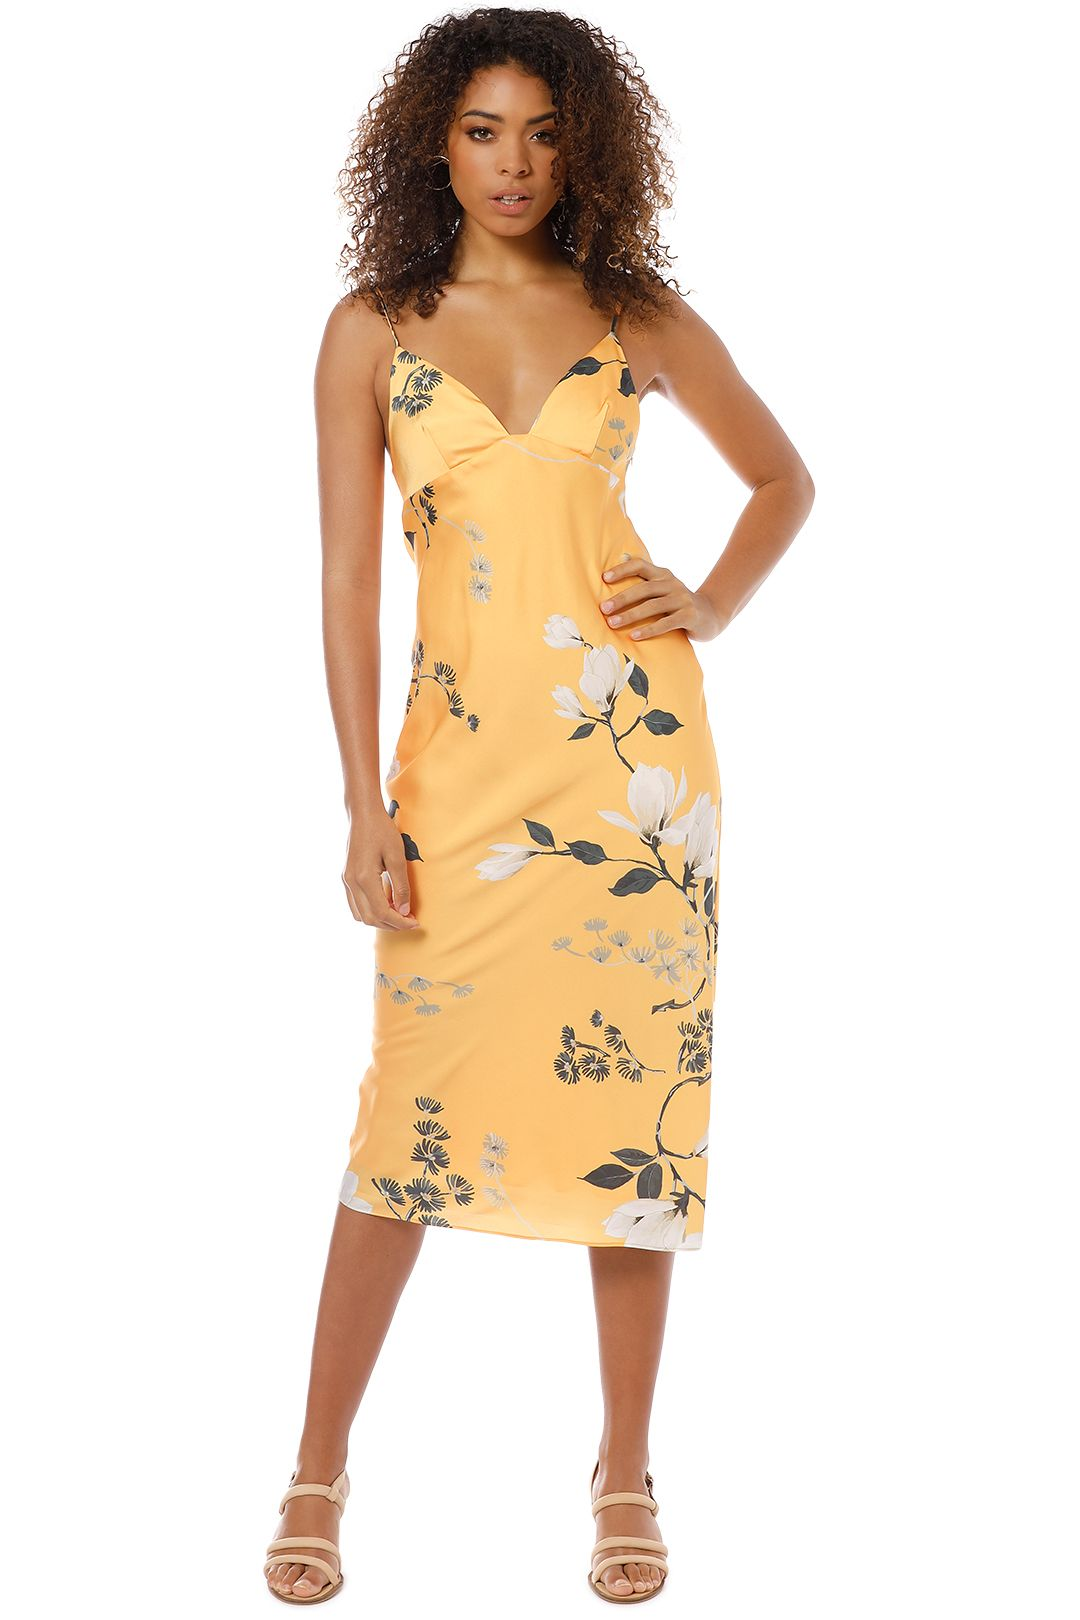 Shona Joy - Rylant Bias Slip Midi Dress - Yellow - Front